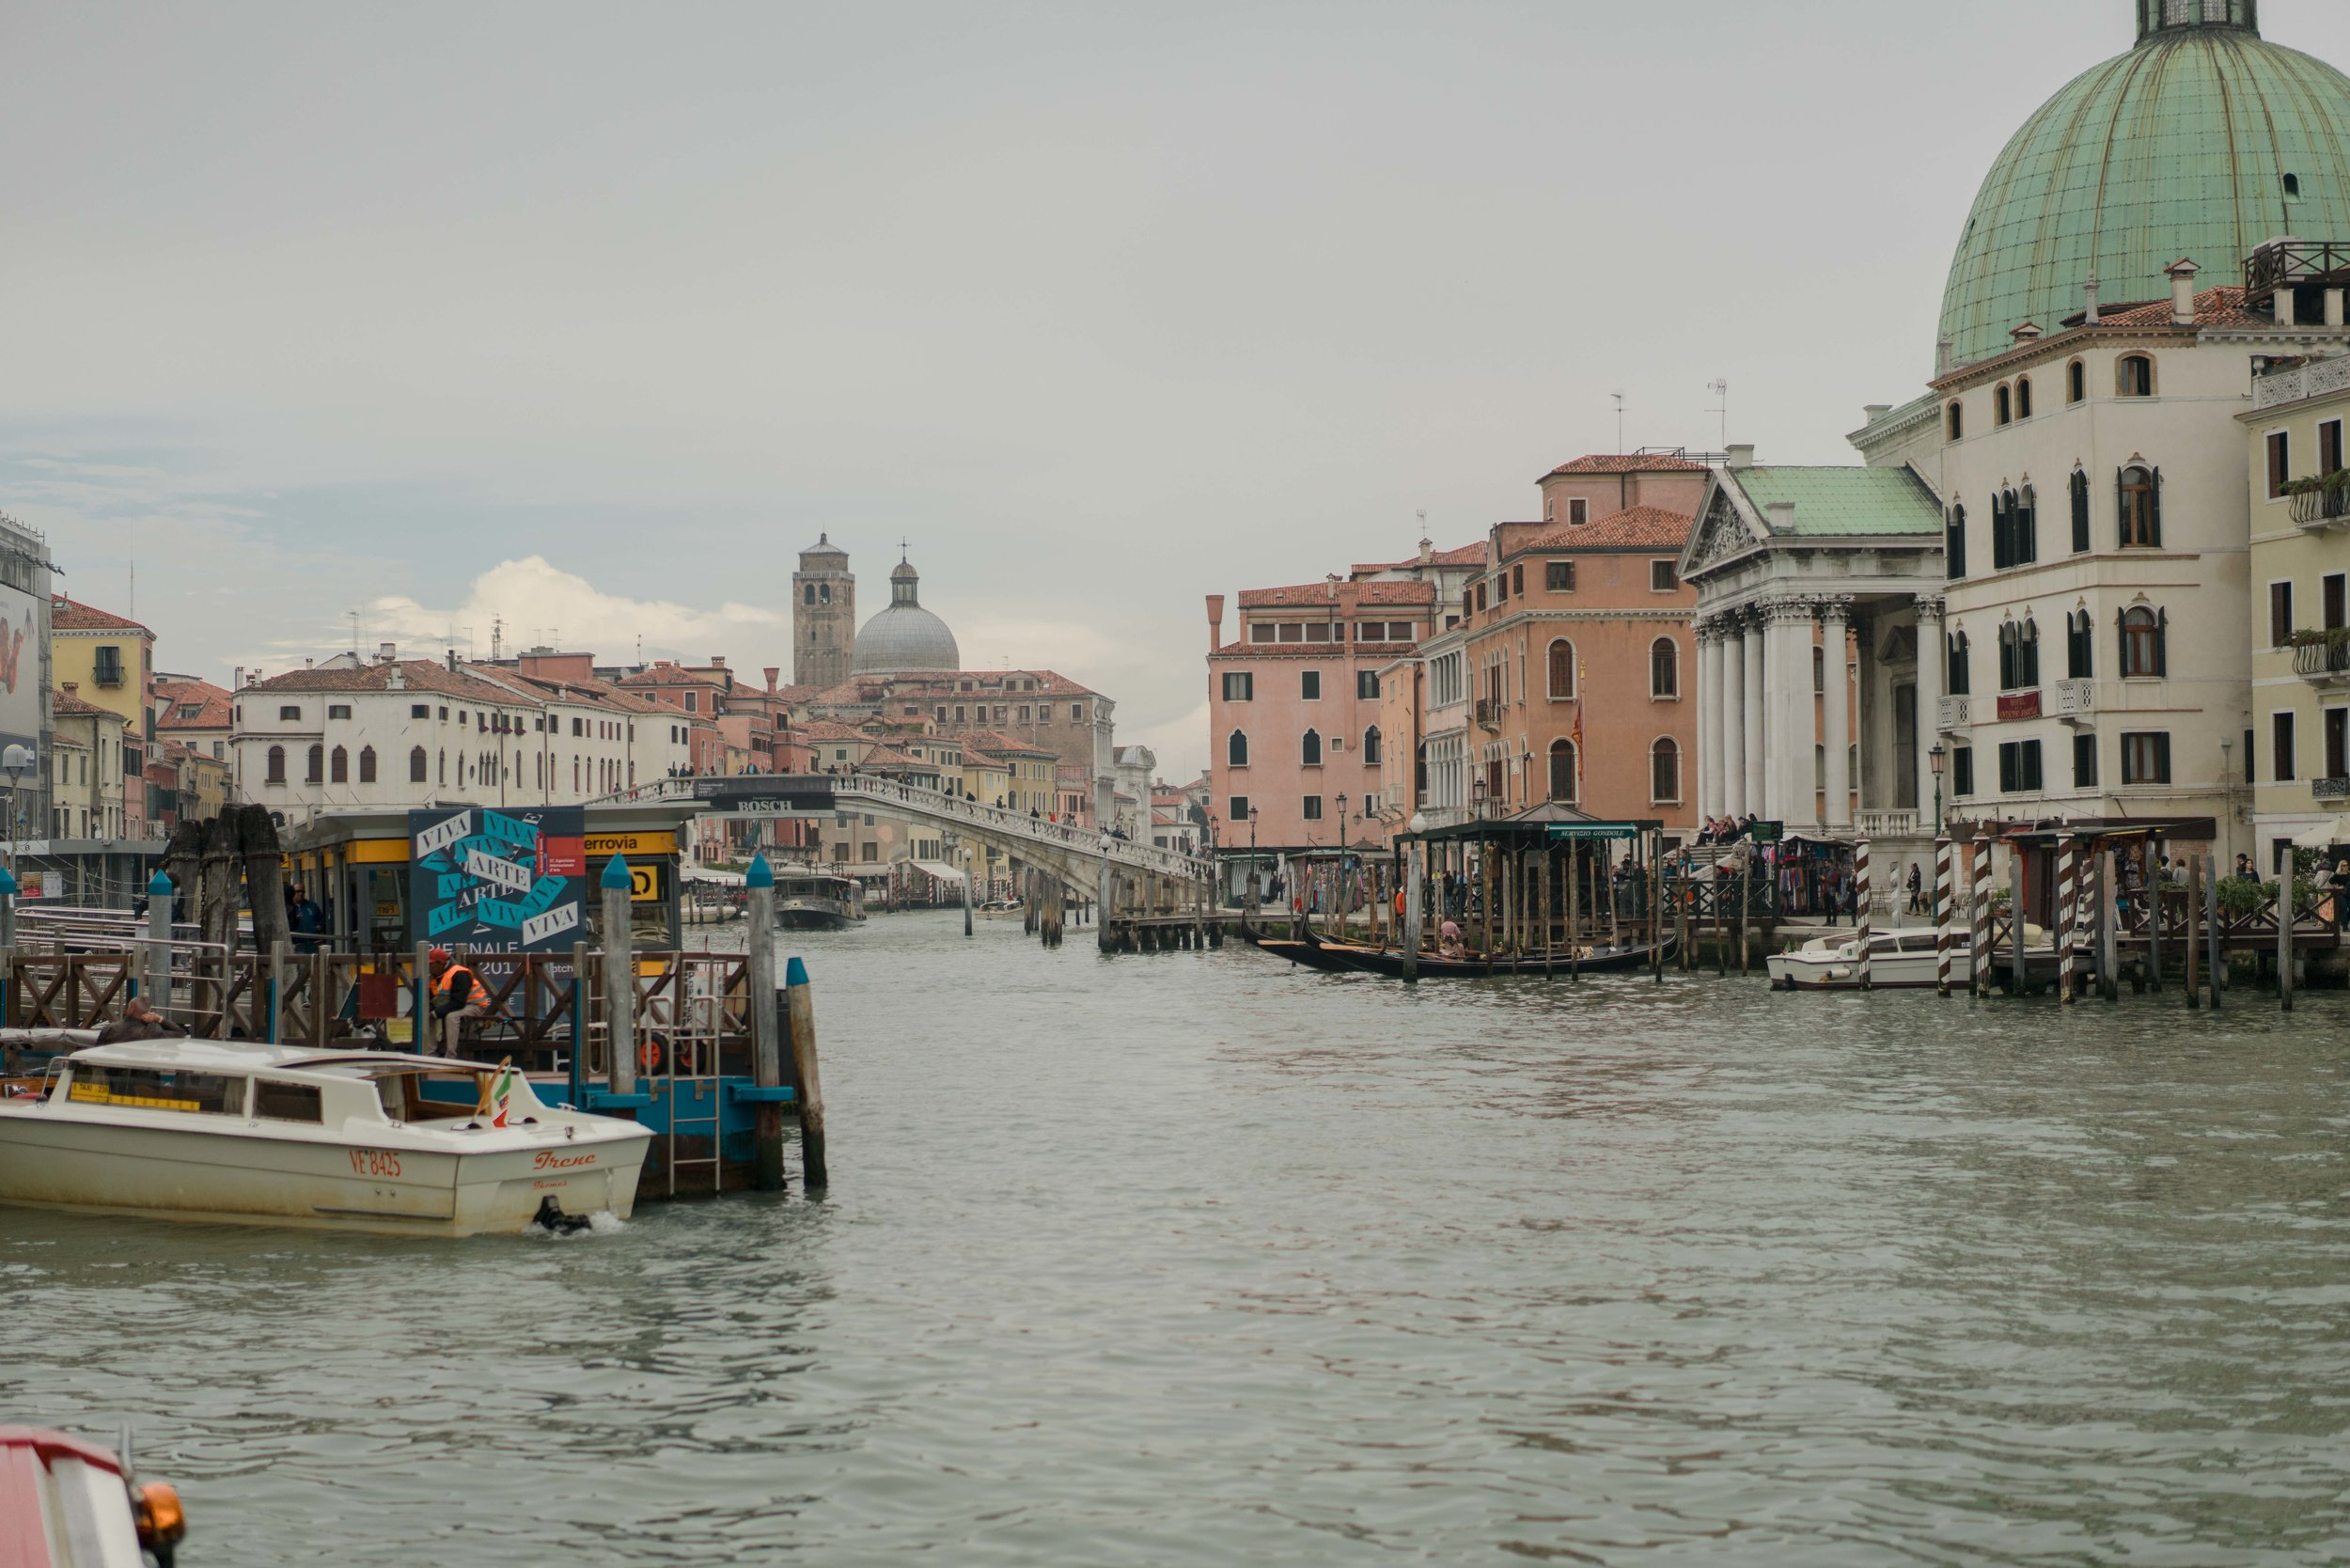 Holiday in Italy - Day 9 Venezia - Sony A7R2 -- 002.jpg